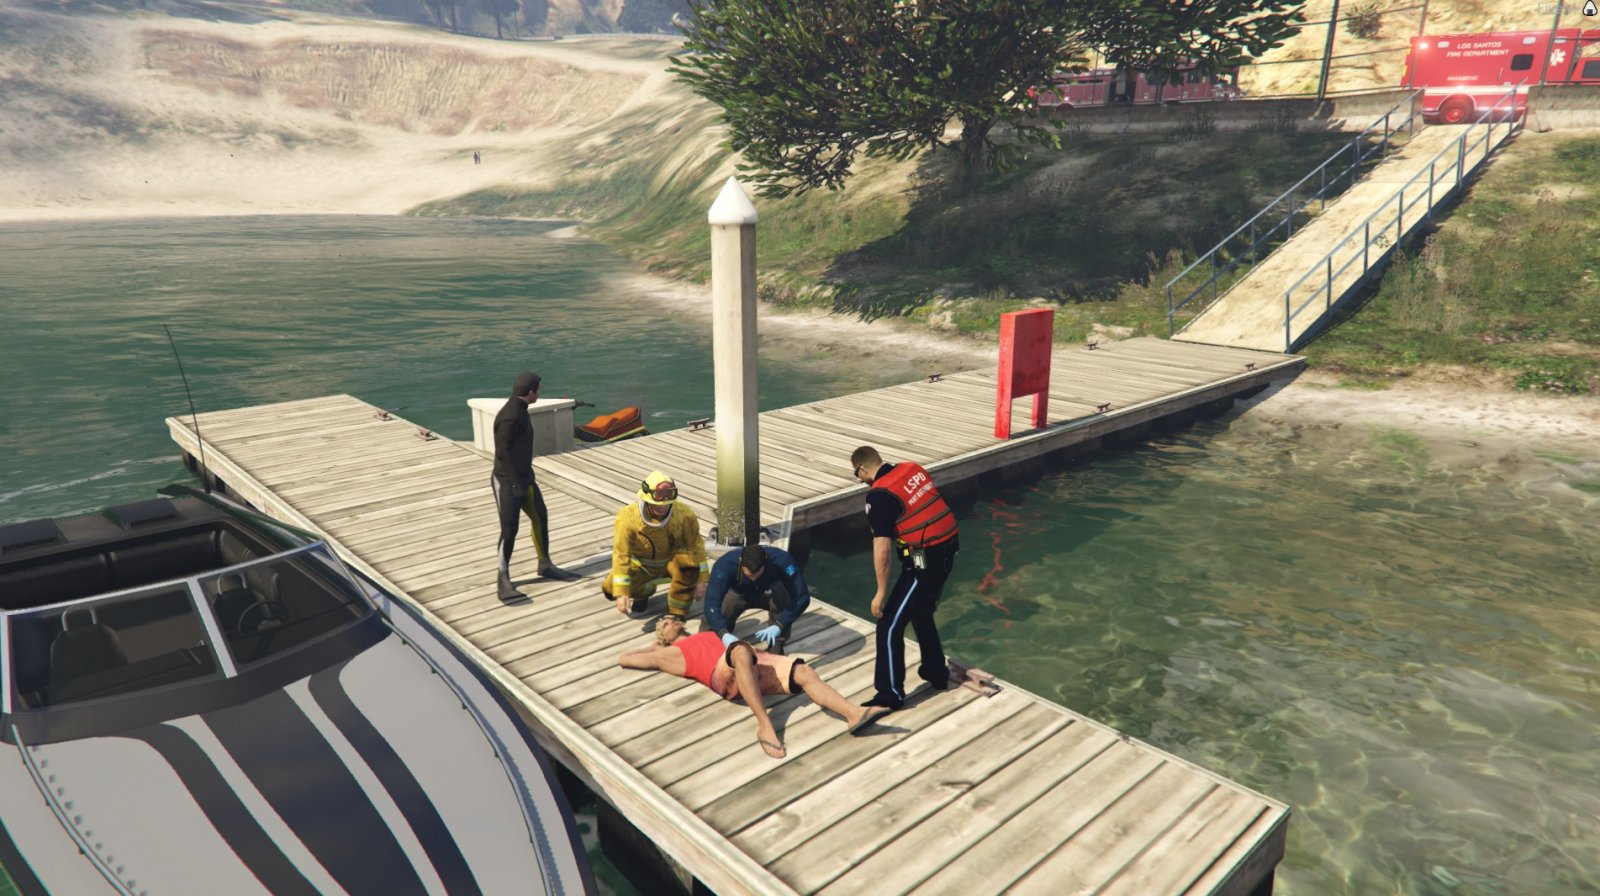 water accident.jpg